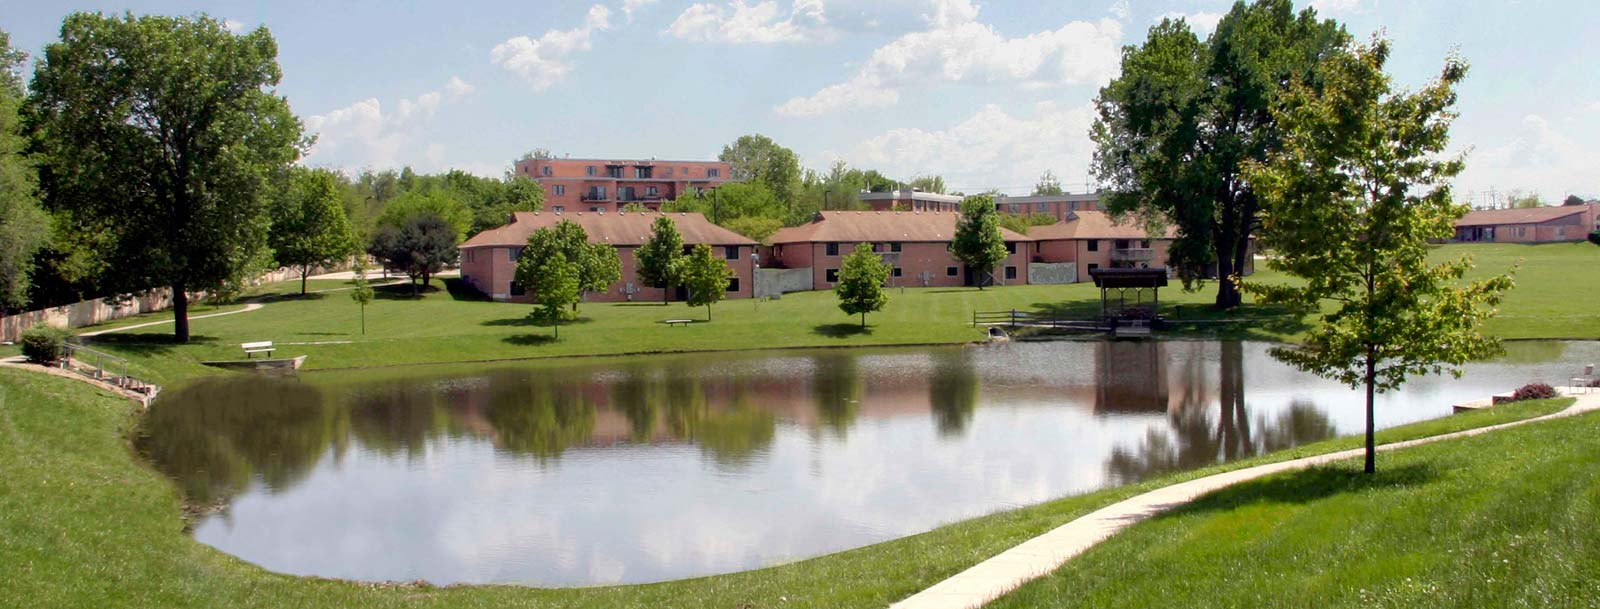 Senior living in Topeka care about your health and wellness